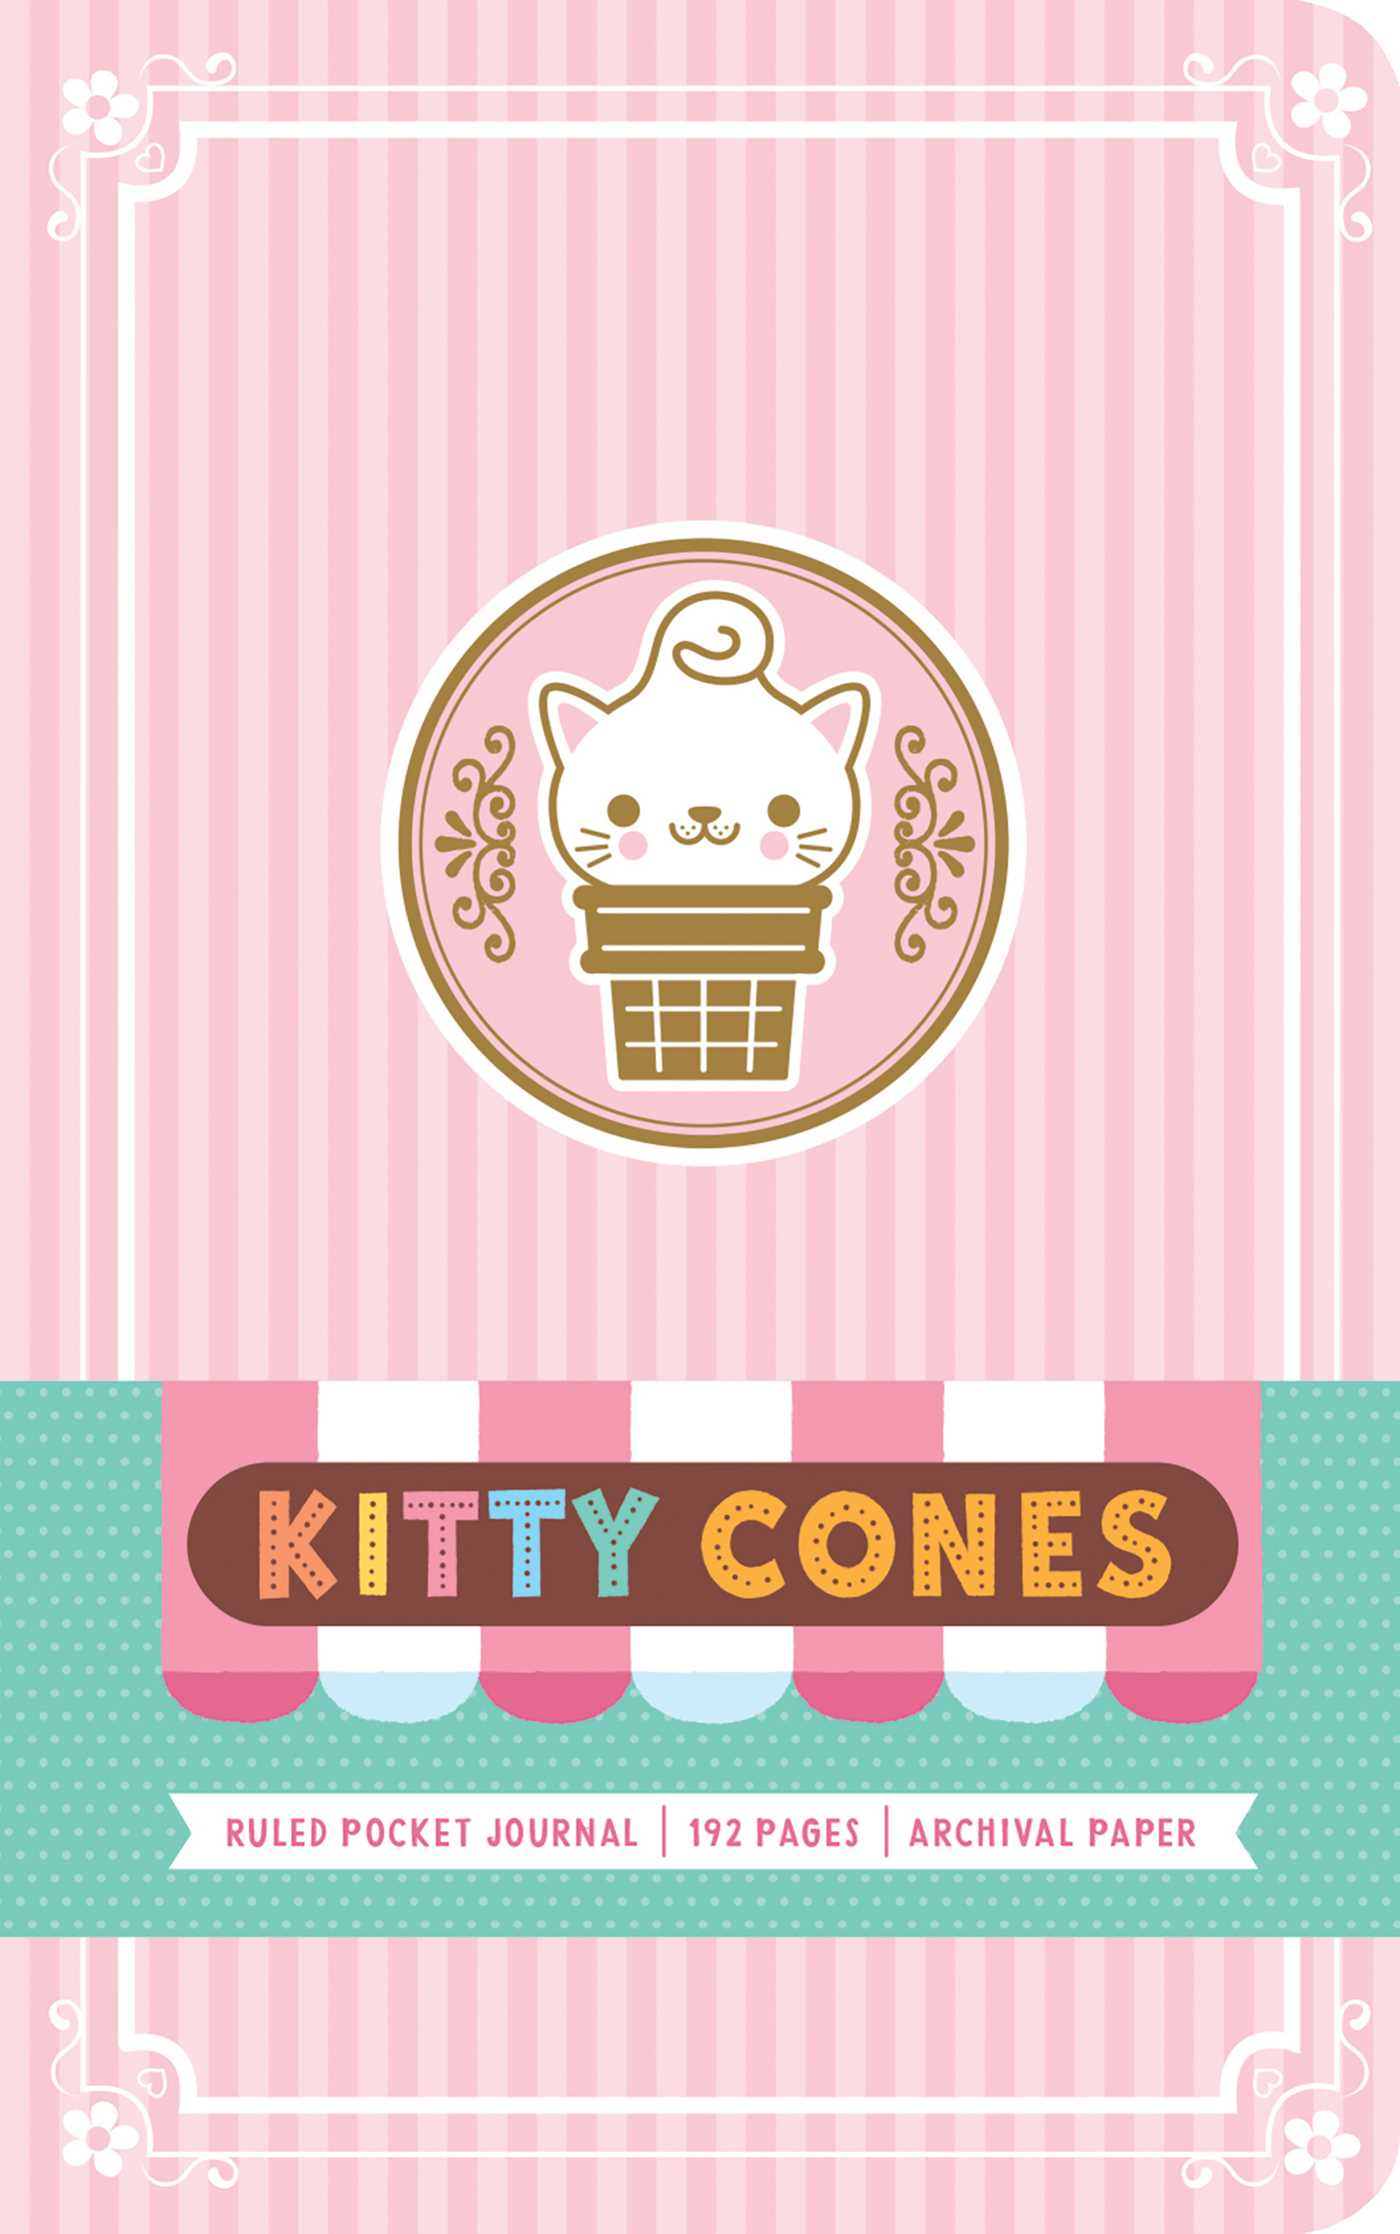 Kitty Cones Ruled Pocket Journal